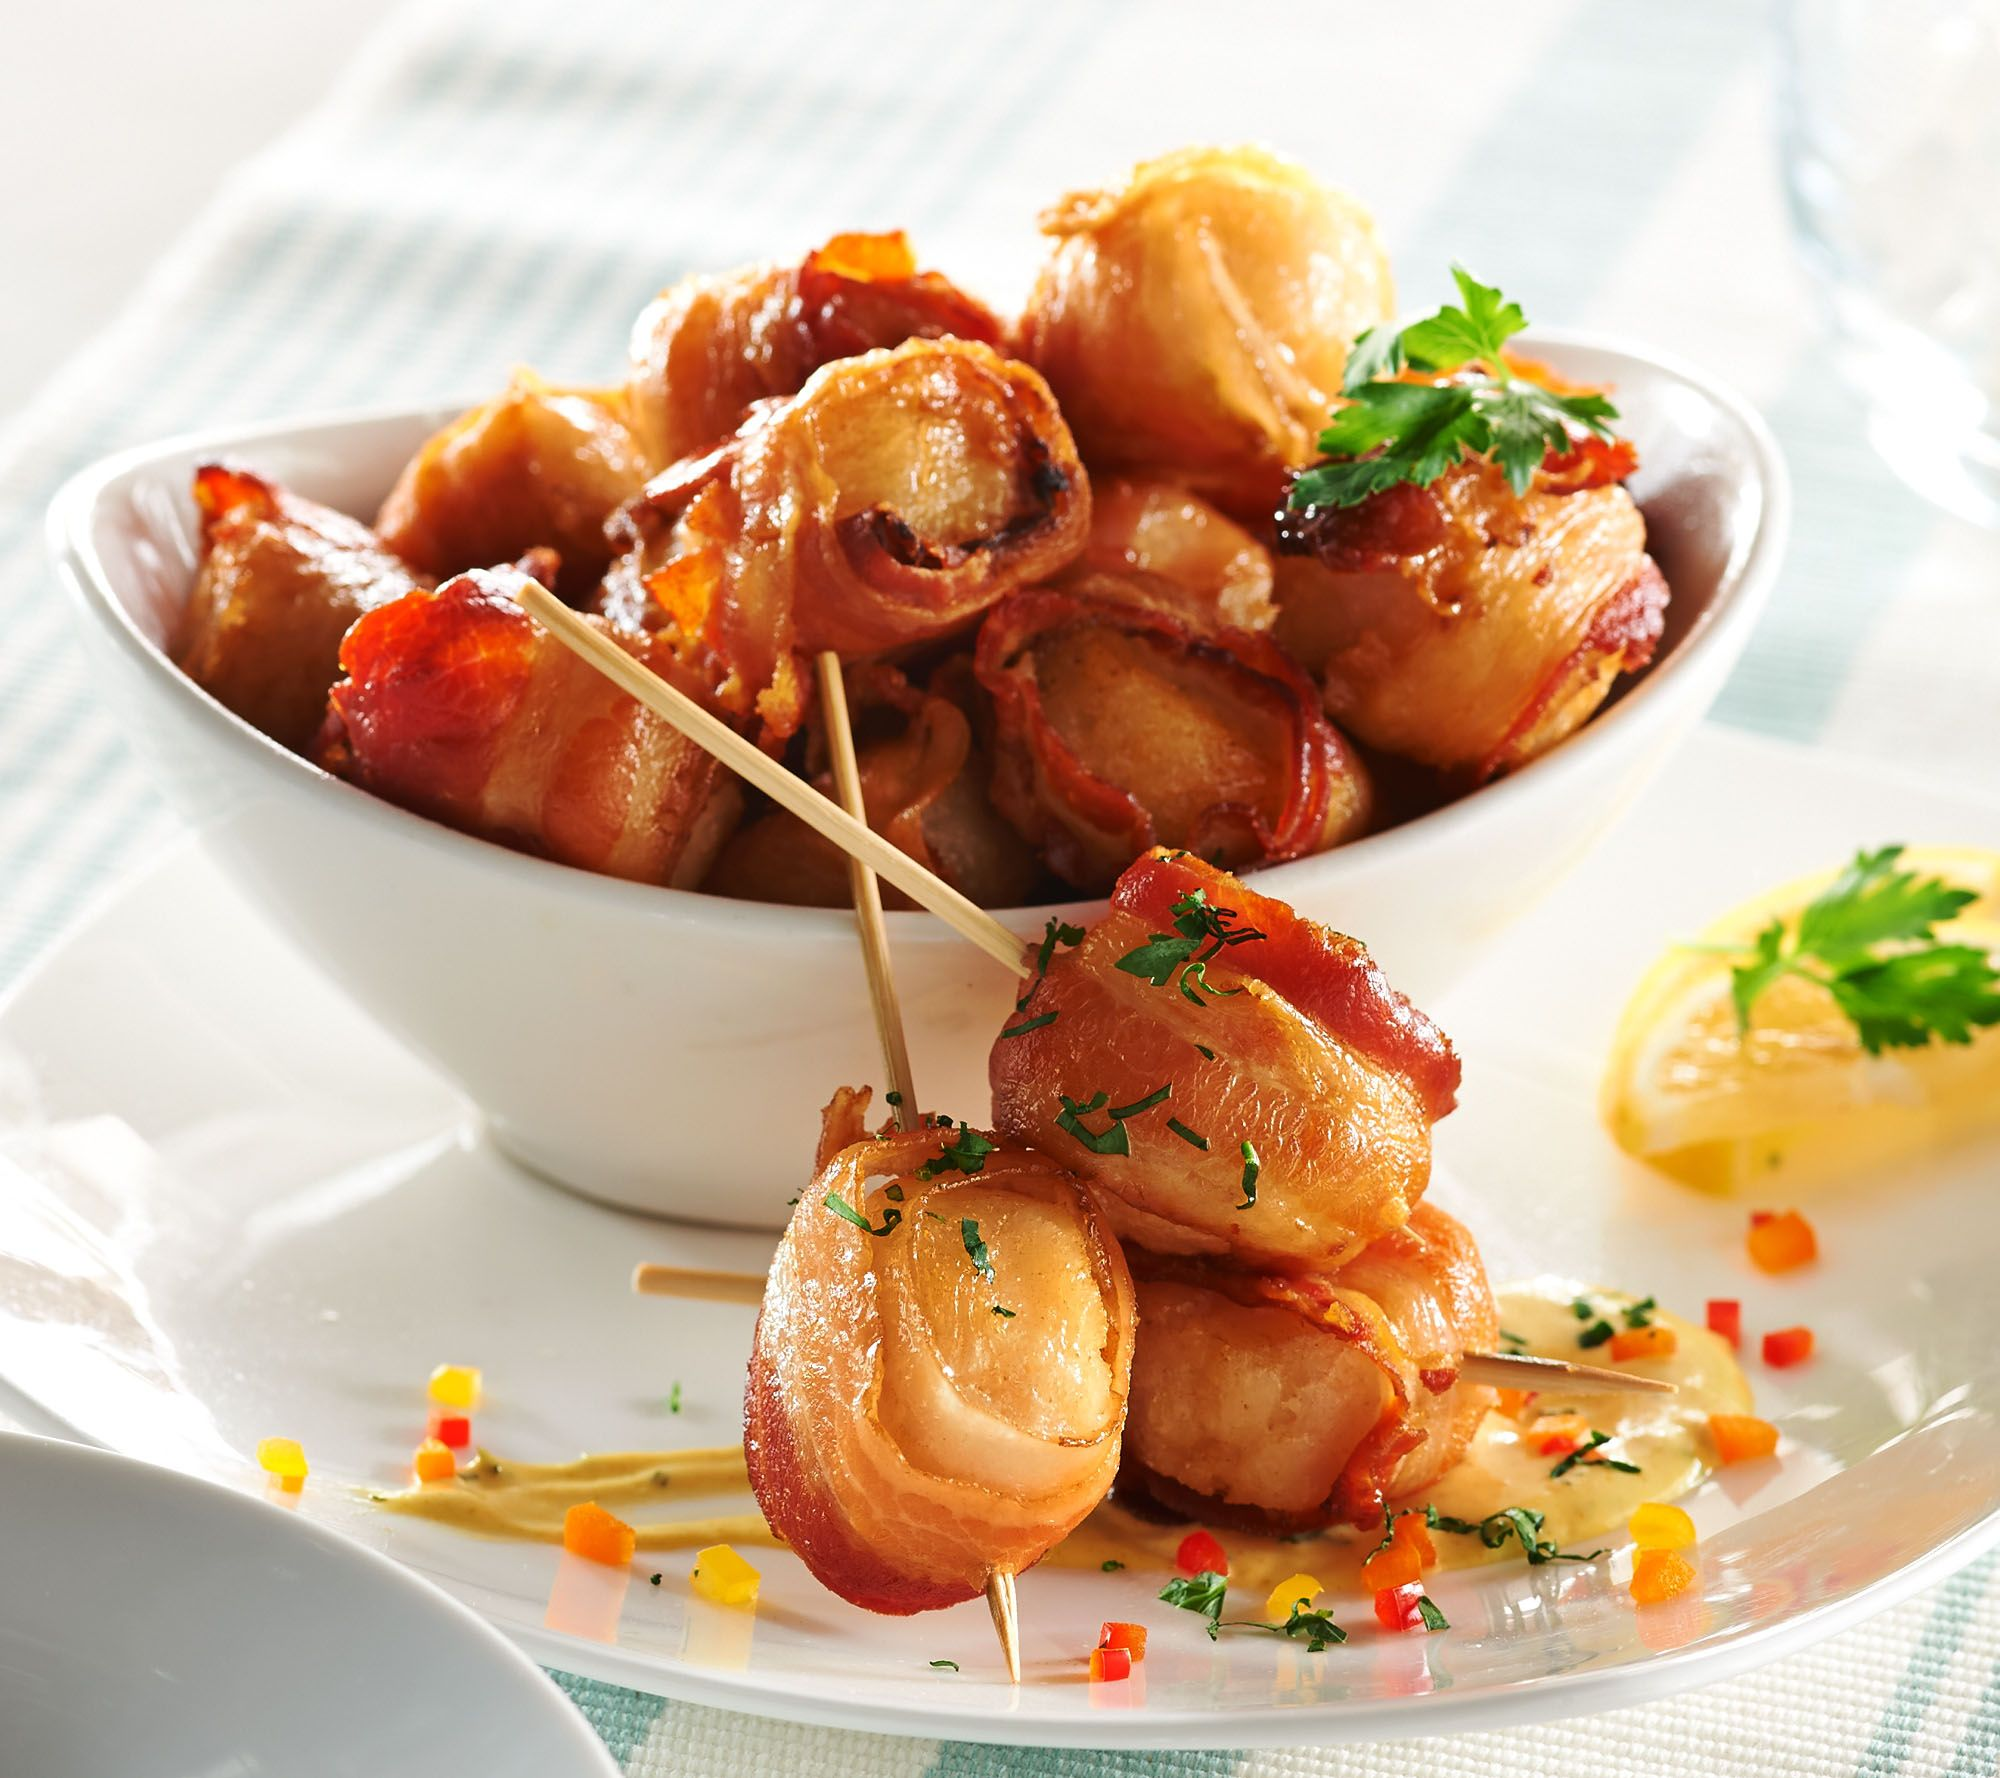 e24918783f Graham   Rollins 3 lbs. of Bacon Wrapped Sea Scallops - Page 1 — QVC.com